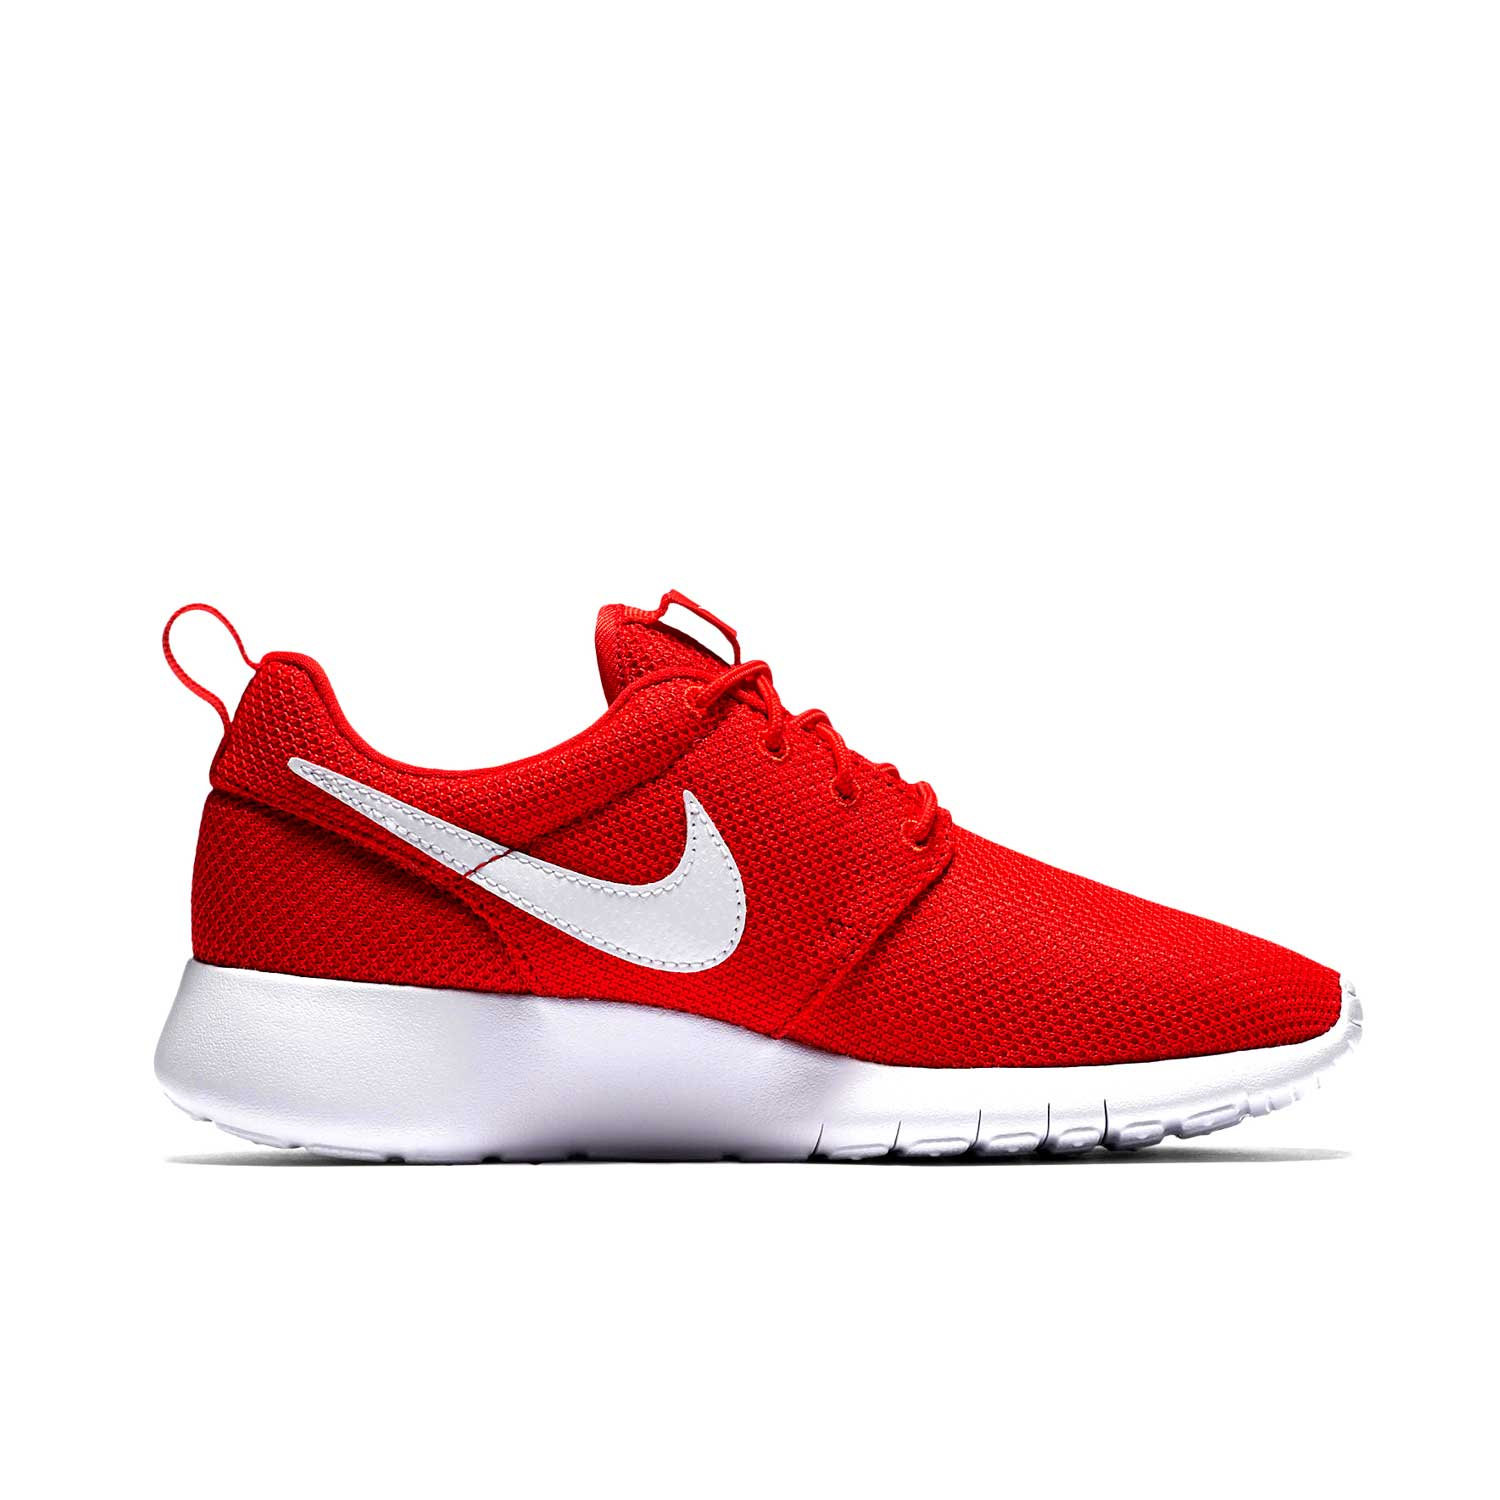 Nike Roshe One Univeristy Red/White (GS) 599728 605